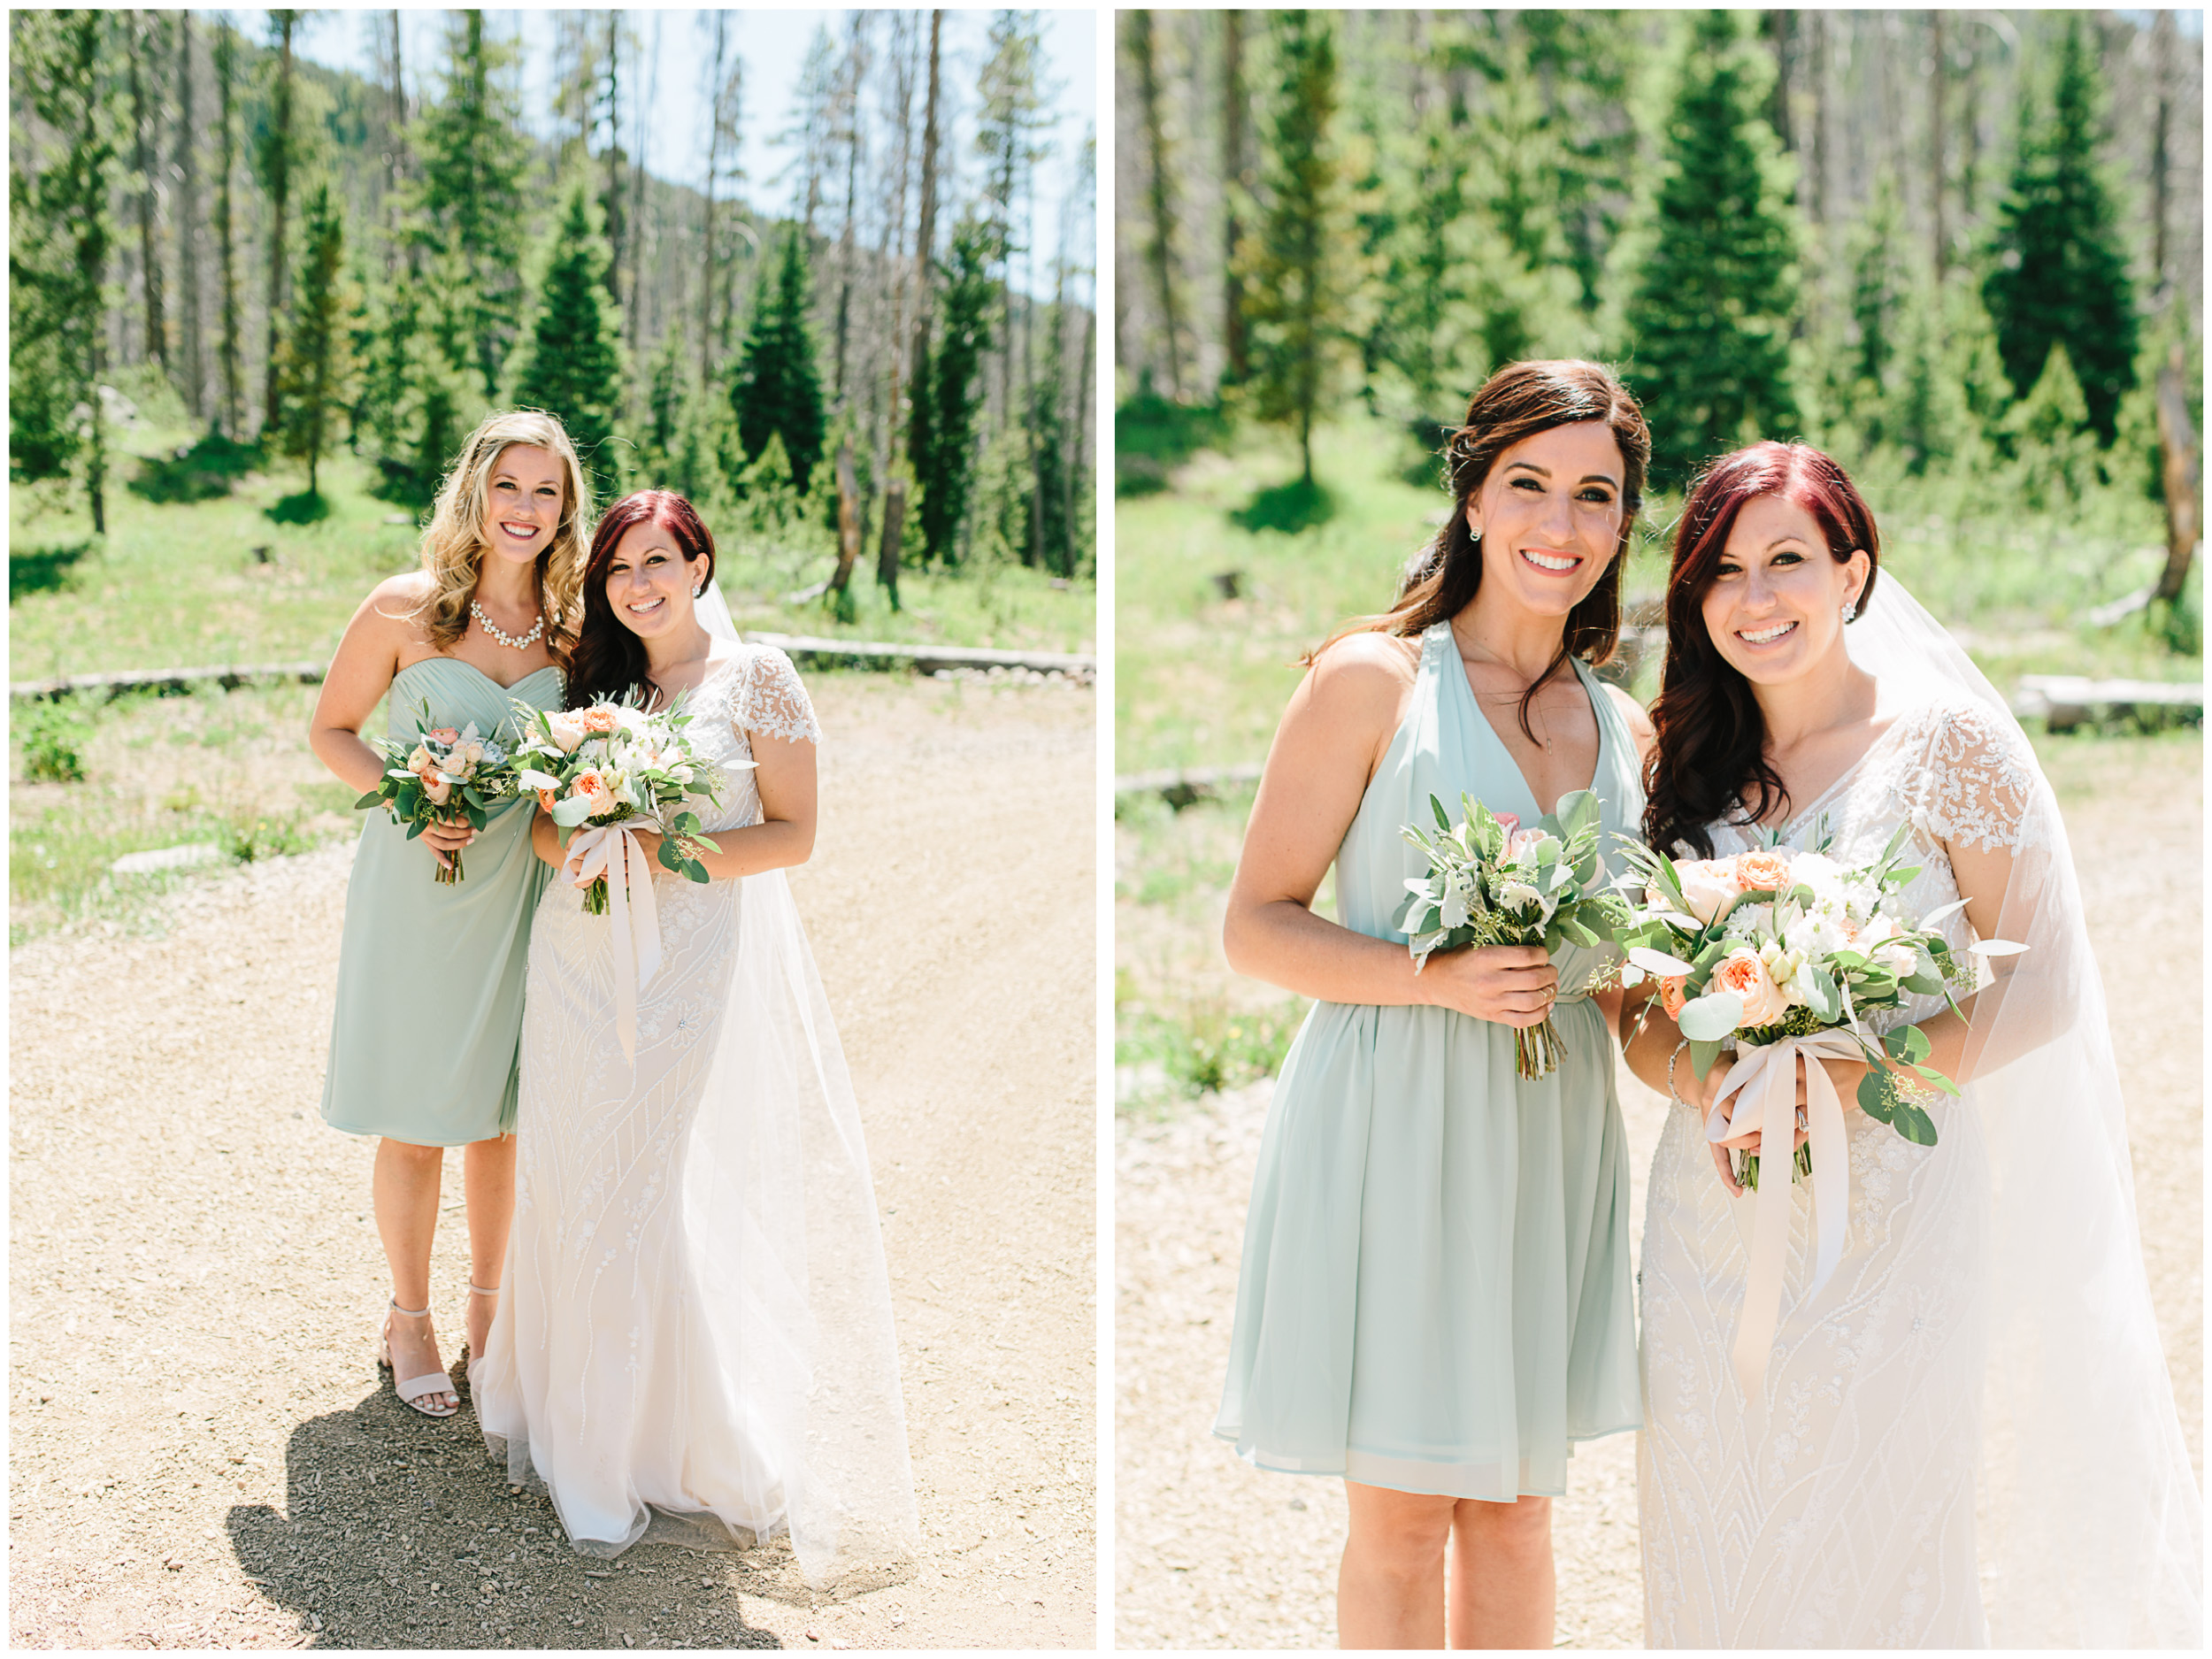 rocky_mountain_wedding_46.jpg